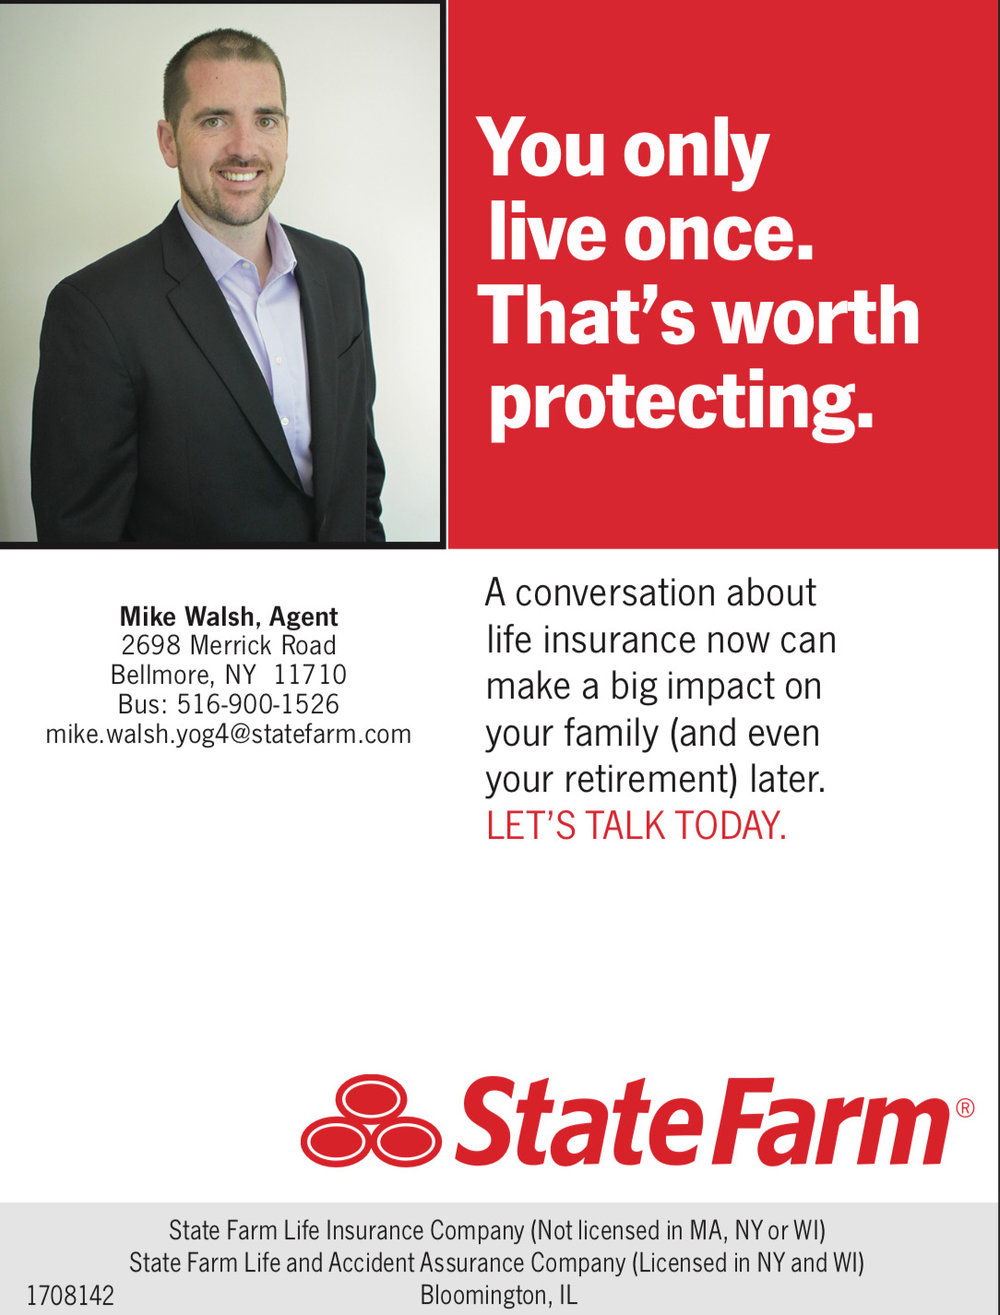 - I have been a State Farm Agent in Nassau County since 2018. Previously I was with Hertz for 11 years, most recently a General Manager with Hertz from 2014 through 2018. I'm married to an amazing woman, father of a beautiful daughter, with another on the way, and a proud owner of Charlie, our pup. I graduated from Marist College in 2007 and played a four years of football on the offensive line.